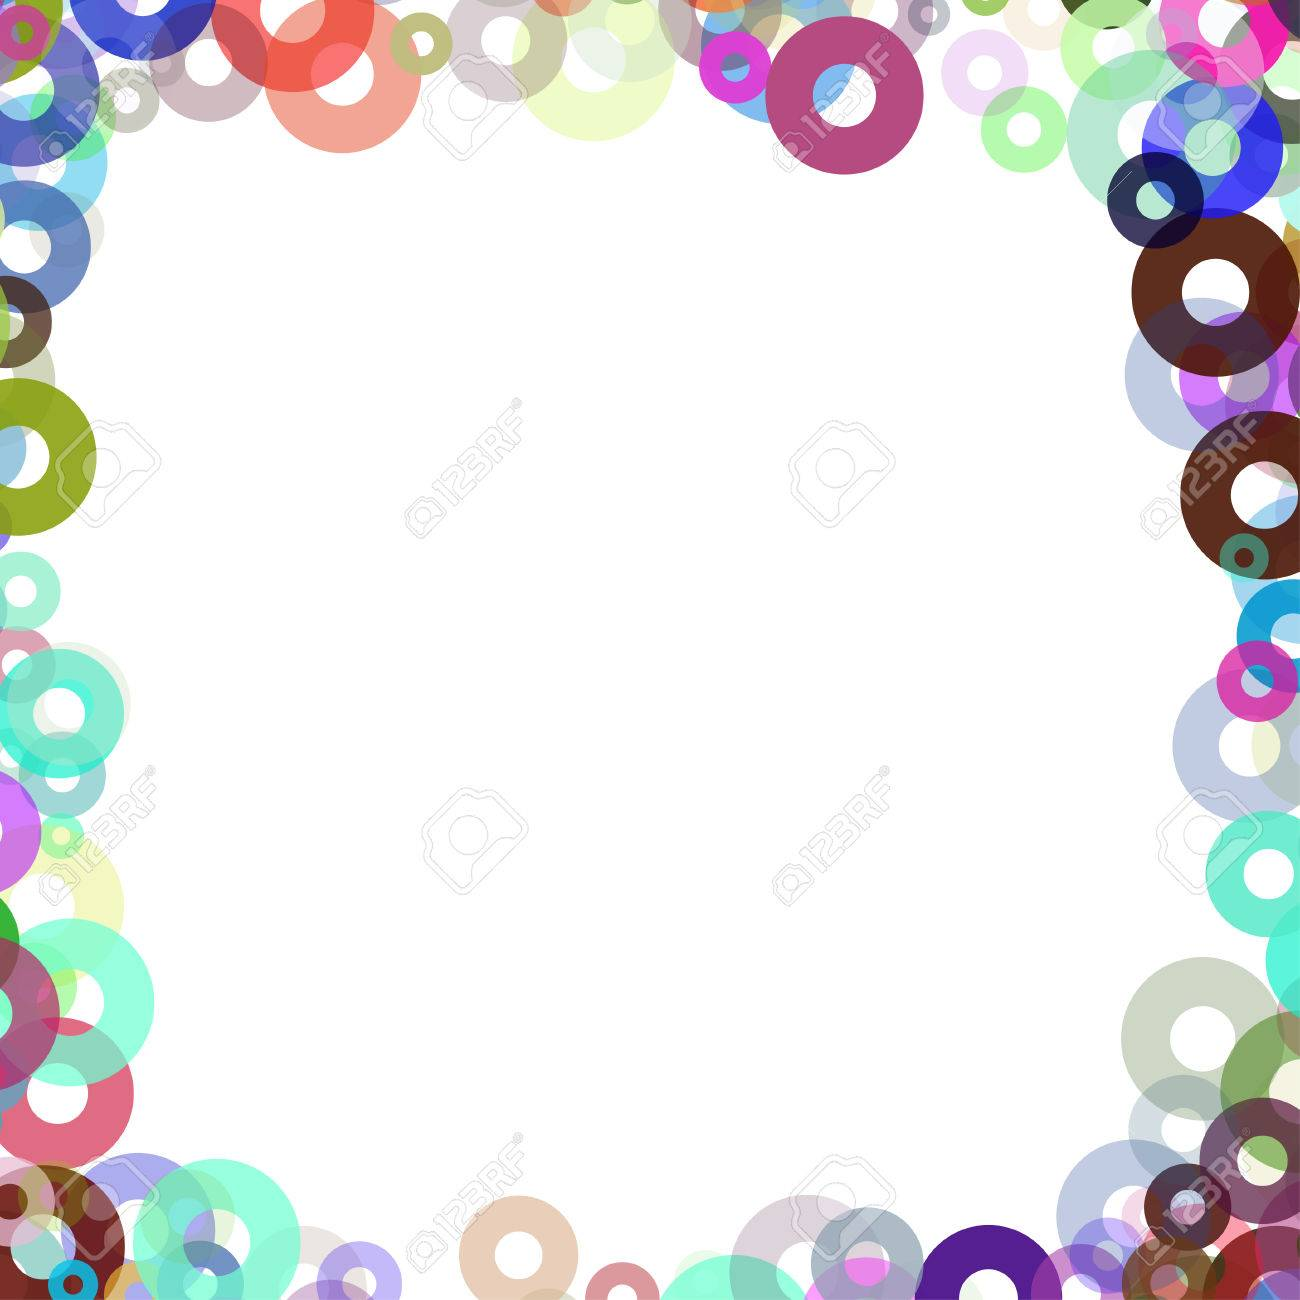 simple frame with colors bagels royalty free cliparts vectors and rh 123rf com Sun Clip Art Coffee Clip Art